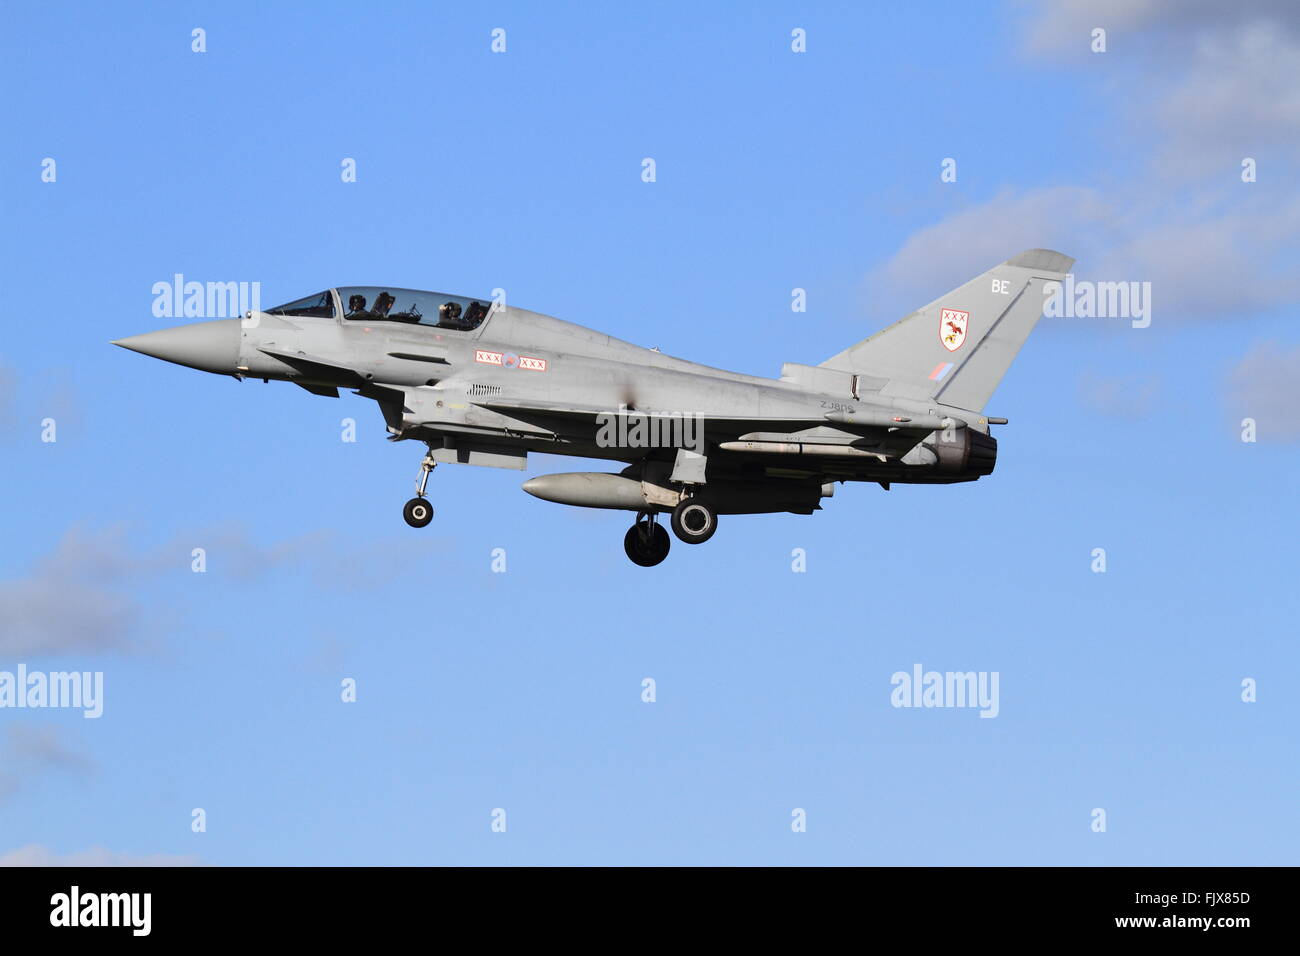 Royal Air Force Typhoon comes in to land at RAF Coningsby. - Stock Image